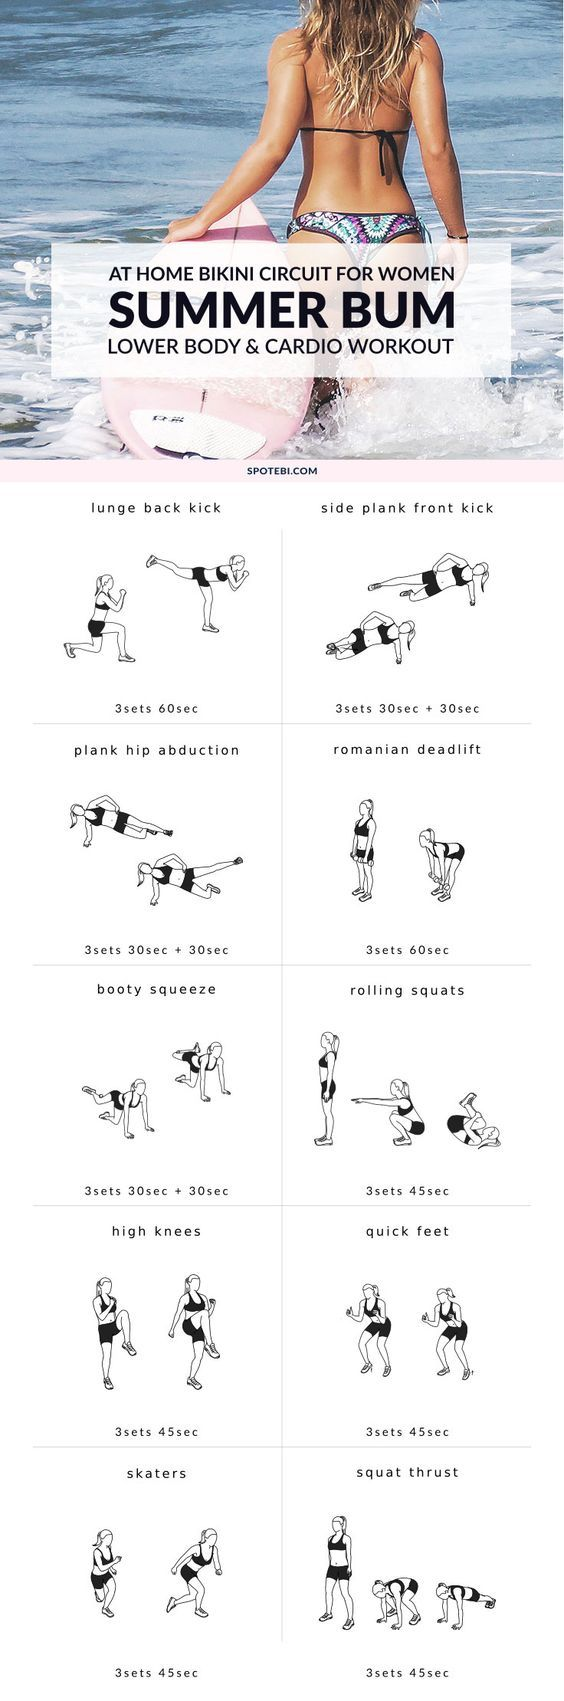 Tighten your core, tone your legs, and sculpt a sexy beach bum with our lower body and cardio workout. Grab a set of dumbbells, turn on the music and start the countdown to your best summer body! https://www.spotebi.com/workout-routines/lower-body-and-cardio-workout/